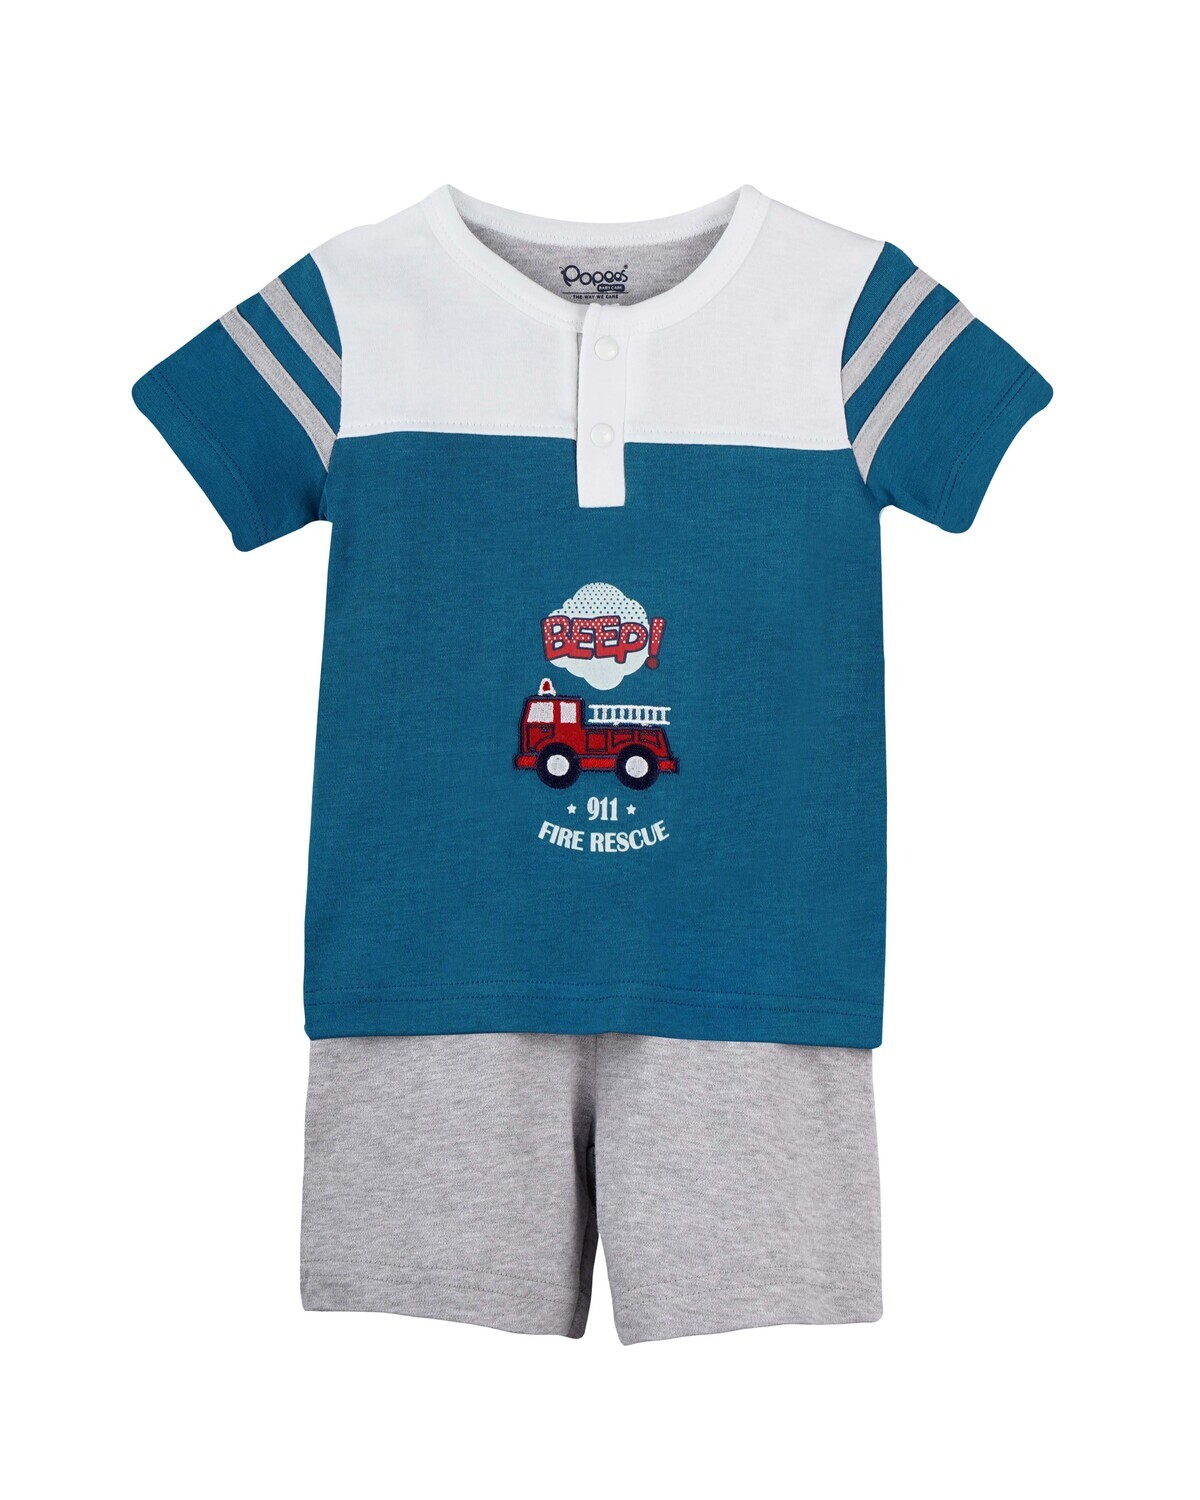 DARVI Celestial Blue Half Sleeve Top and Trouser for Baby Boys